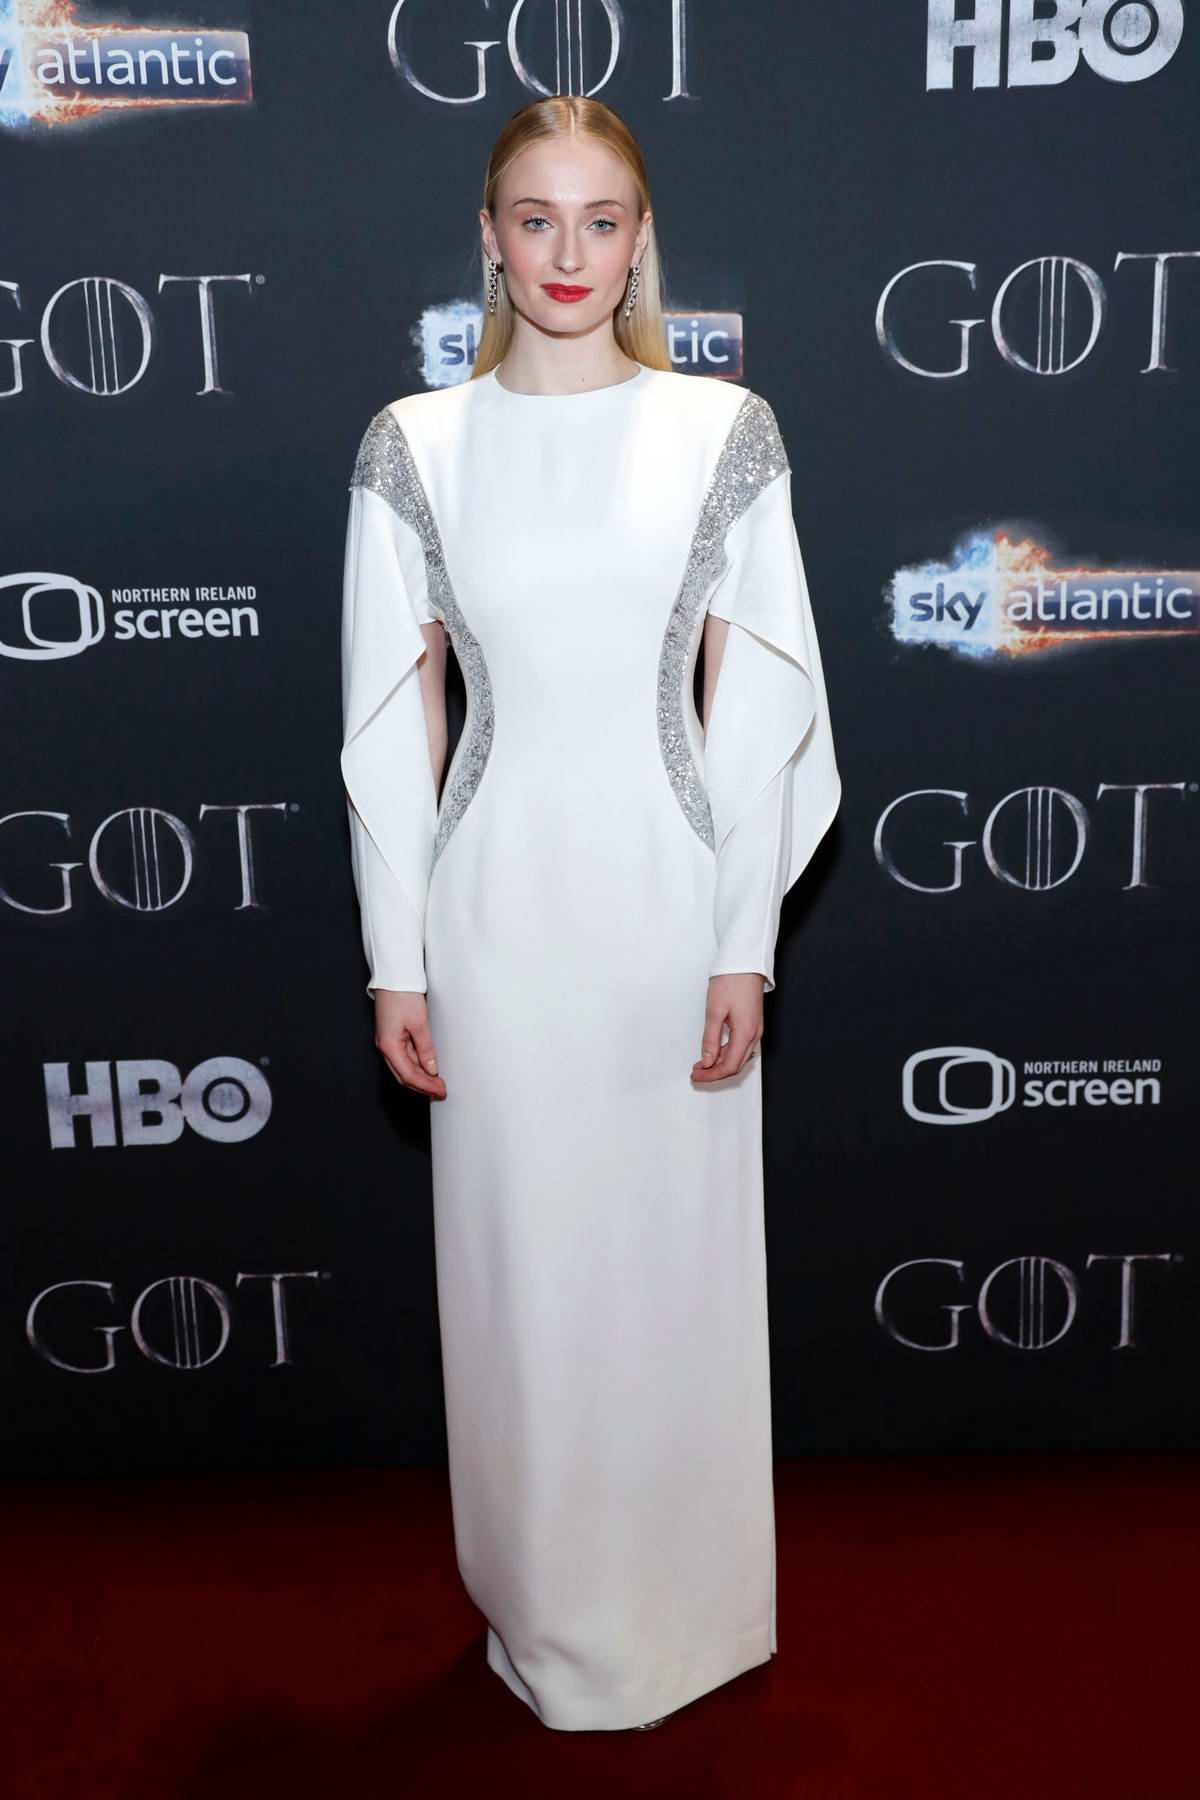 Sophie Turner attends 'Game of Thrones' premiere held at Waterfront Hall in Belfast, Northern Ireland